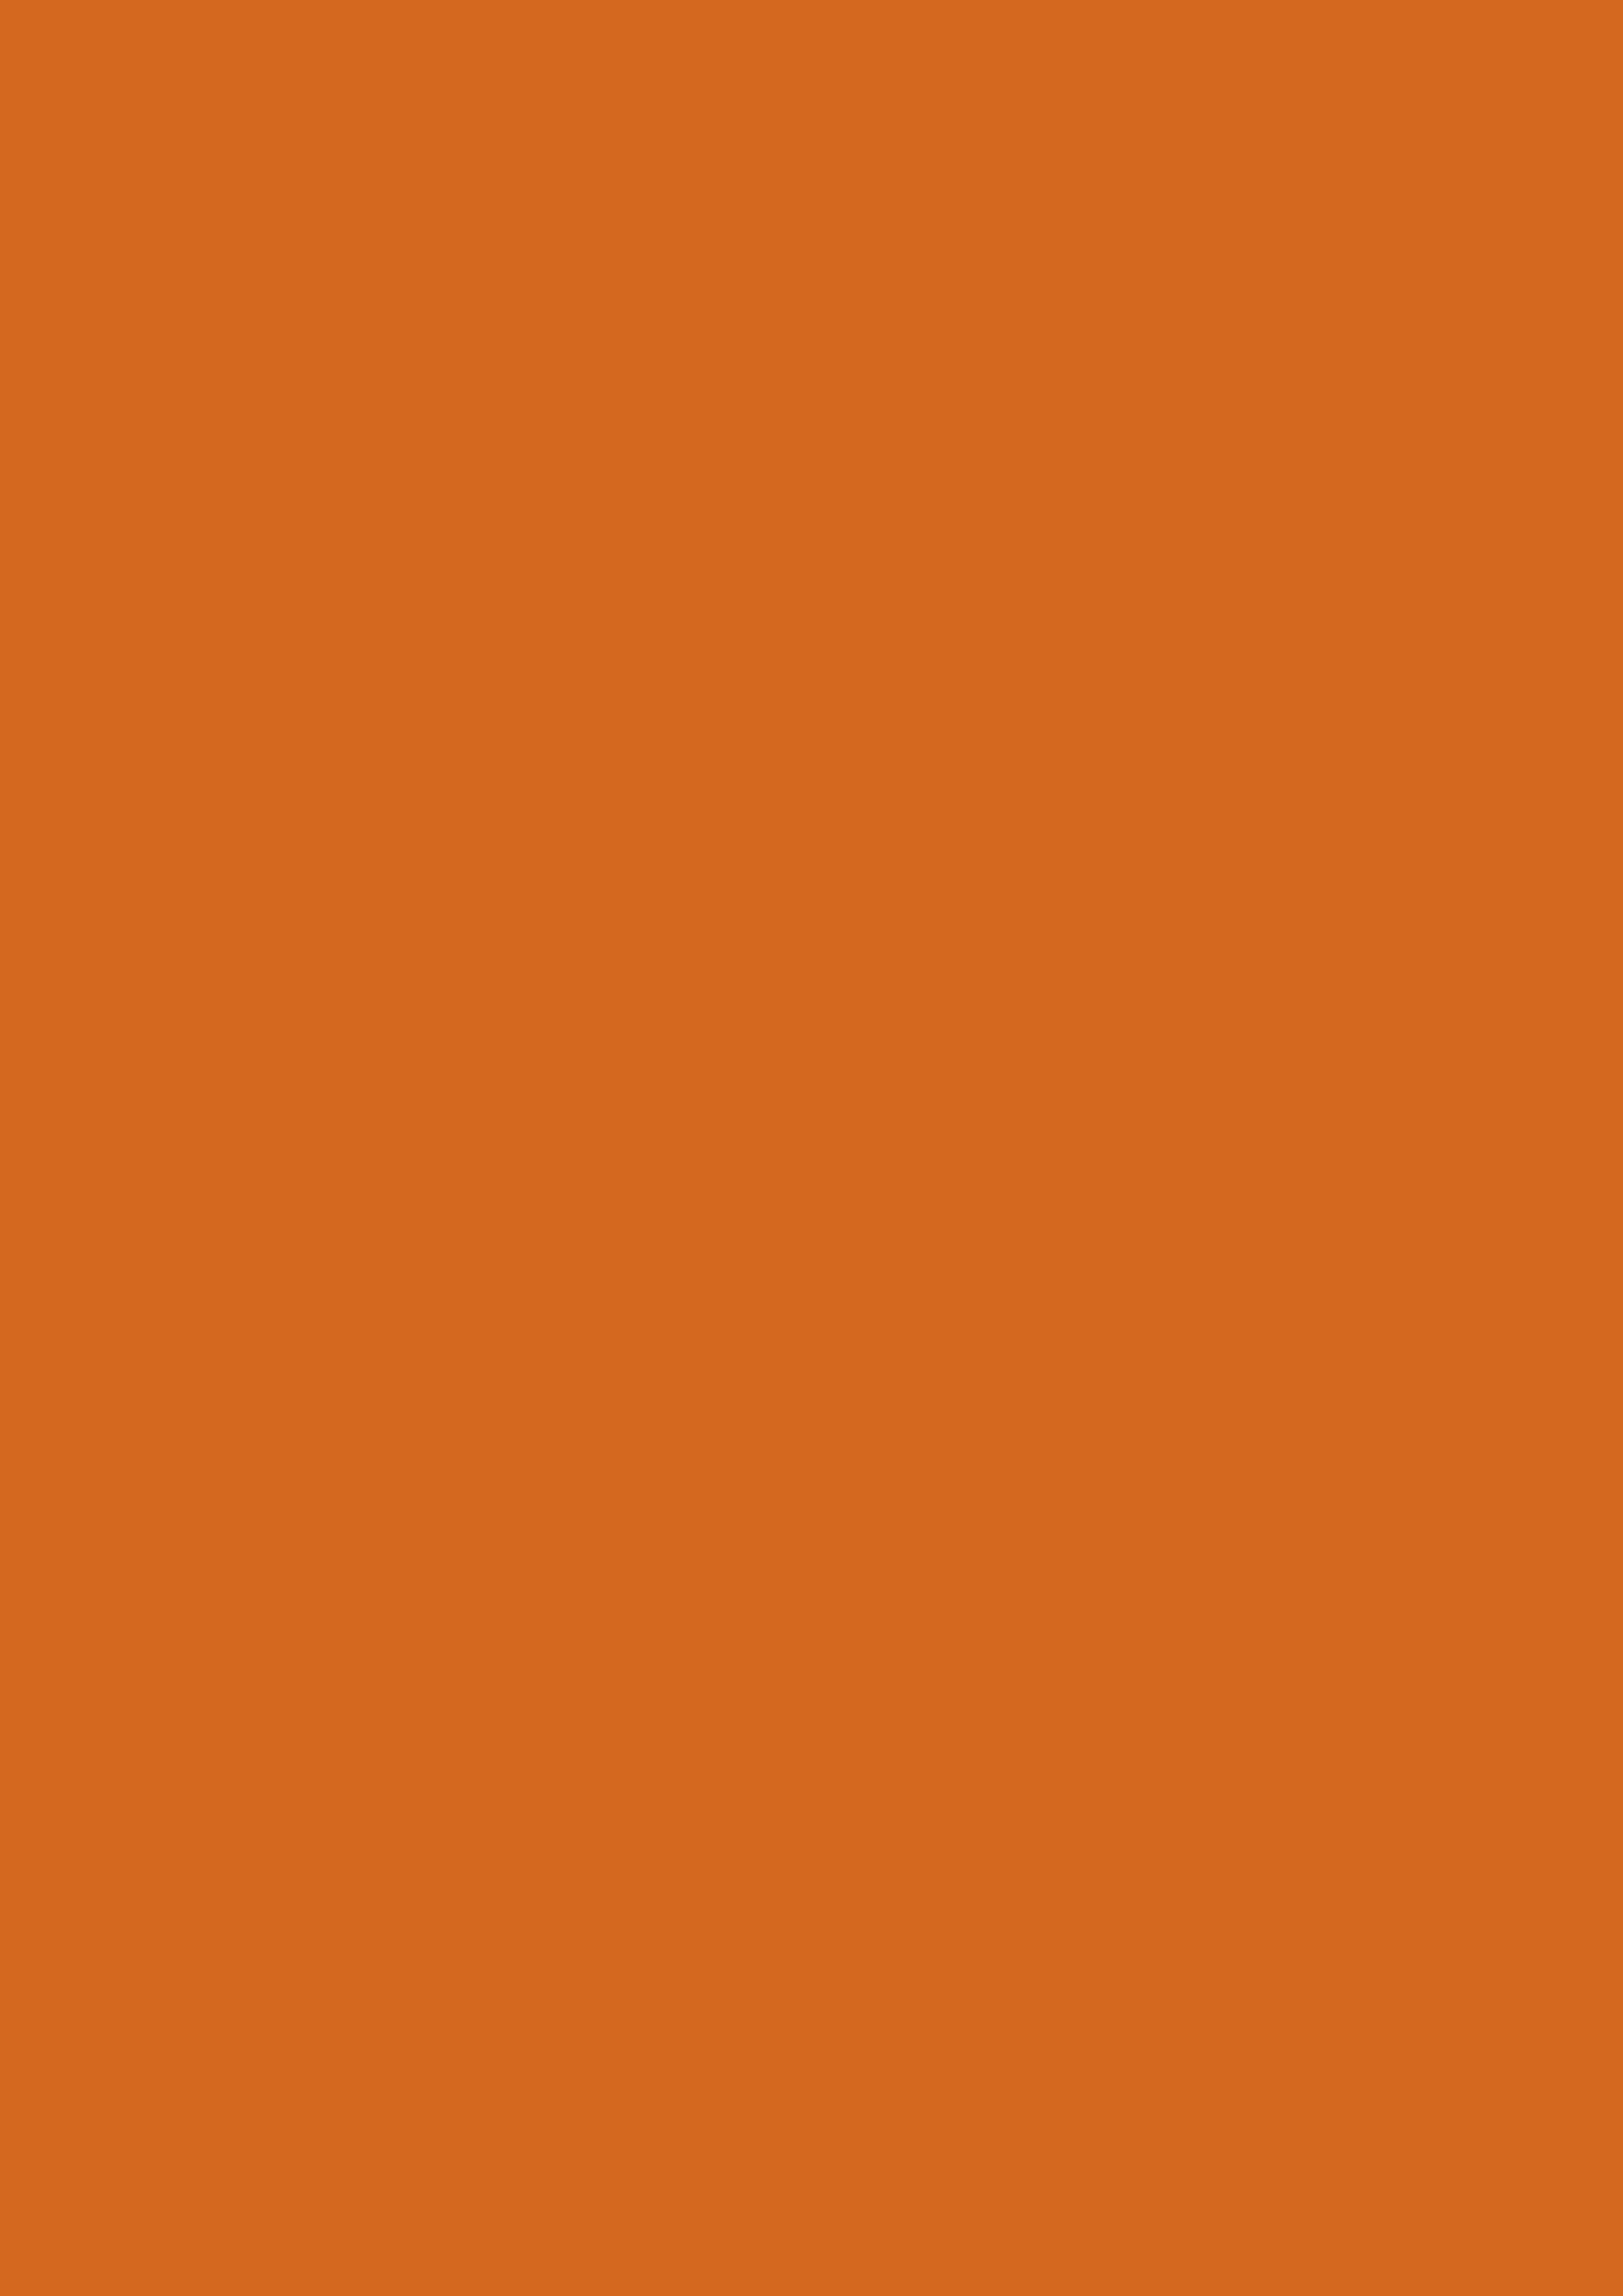 2480x3508 Cocoa Brown Solid Color Background